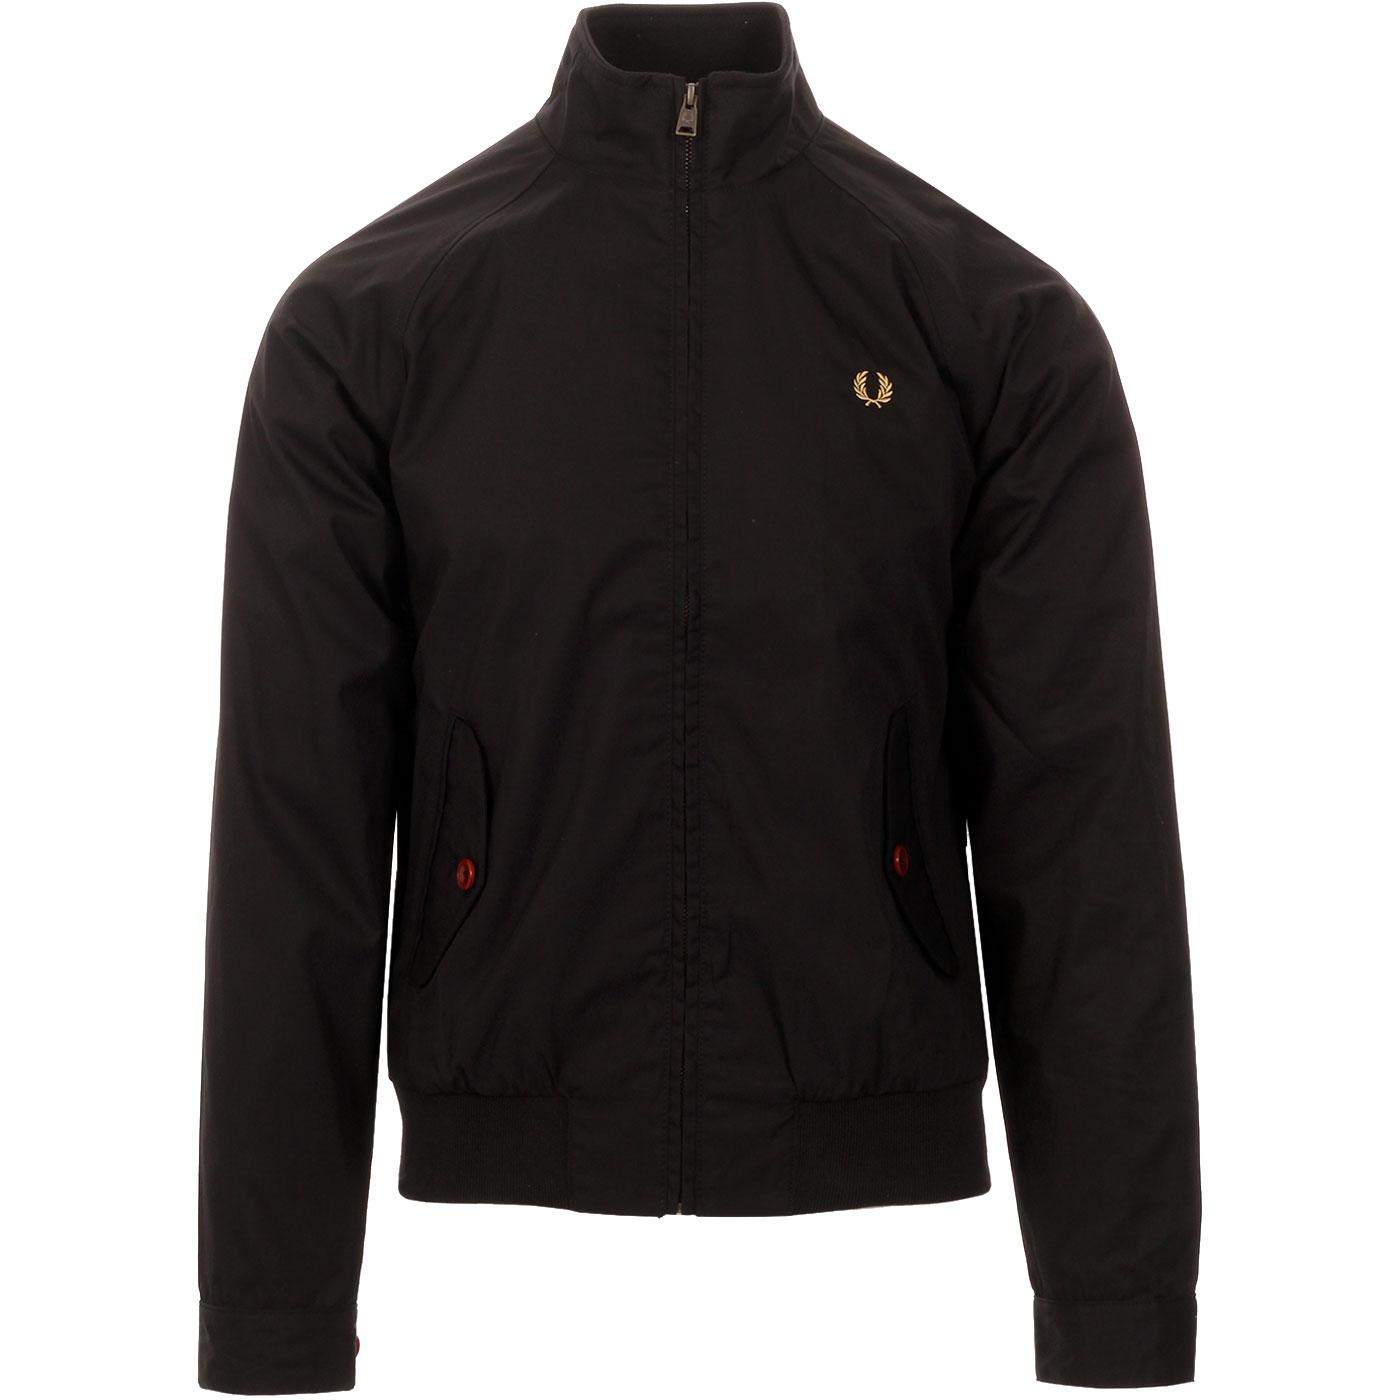 Ealing FRED PERRY Retro Funnel Neck Bomber Jacket